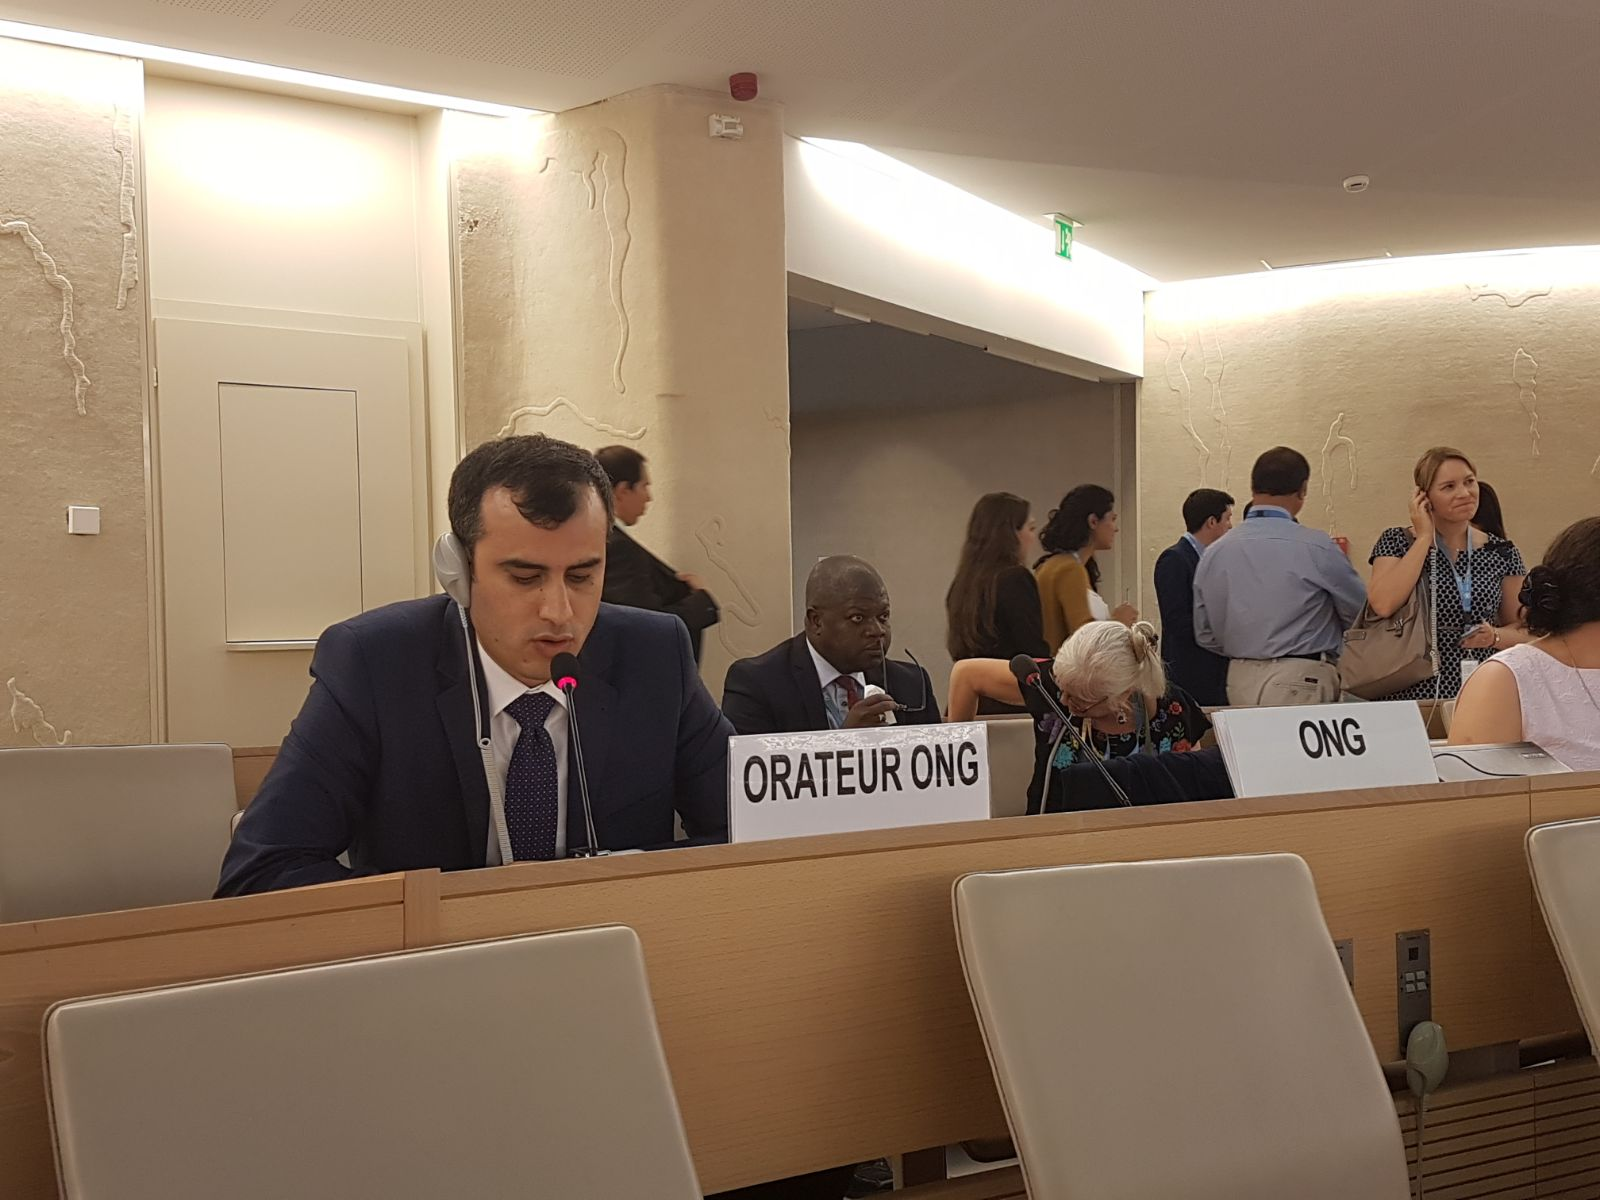 Israeli violations in occupied Jerusalem addressed during UN human rights session  by Euro-Med Monitor chairman